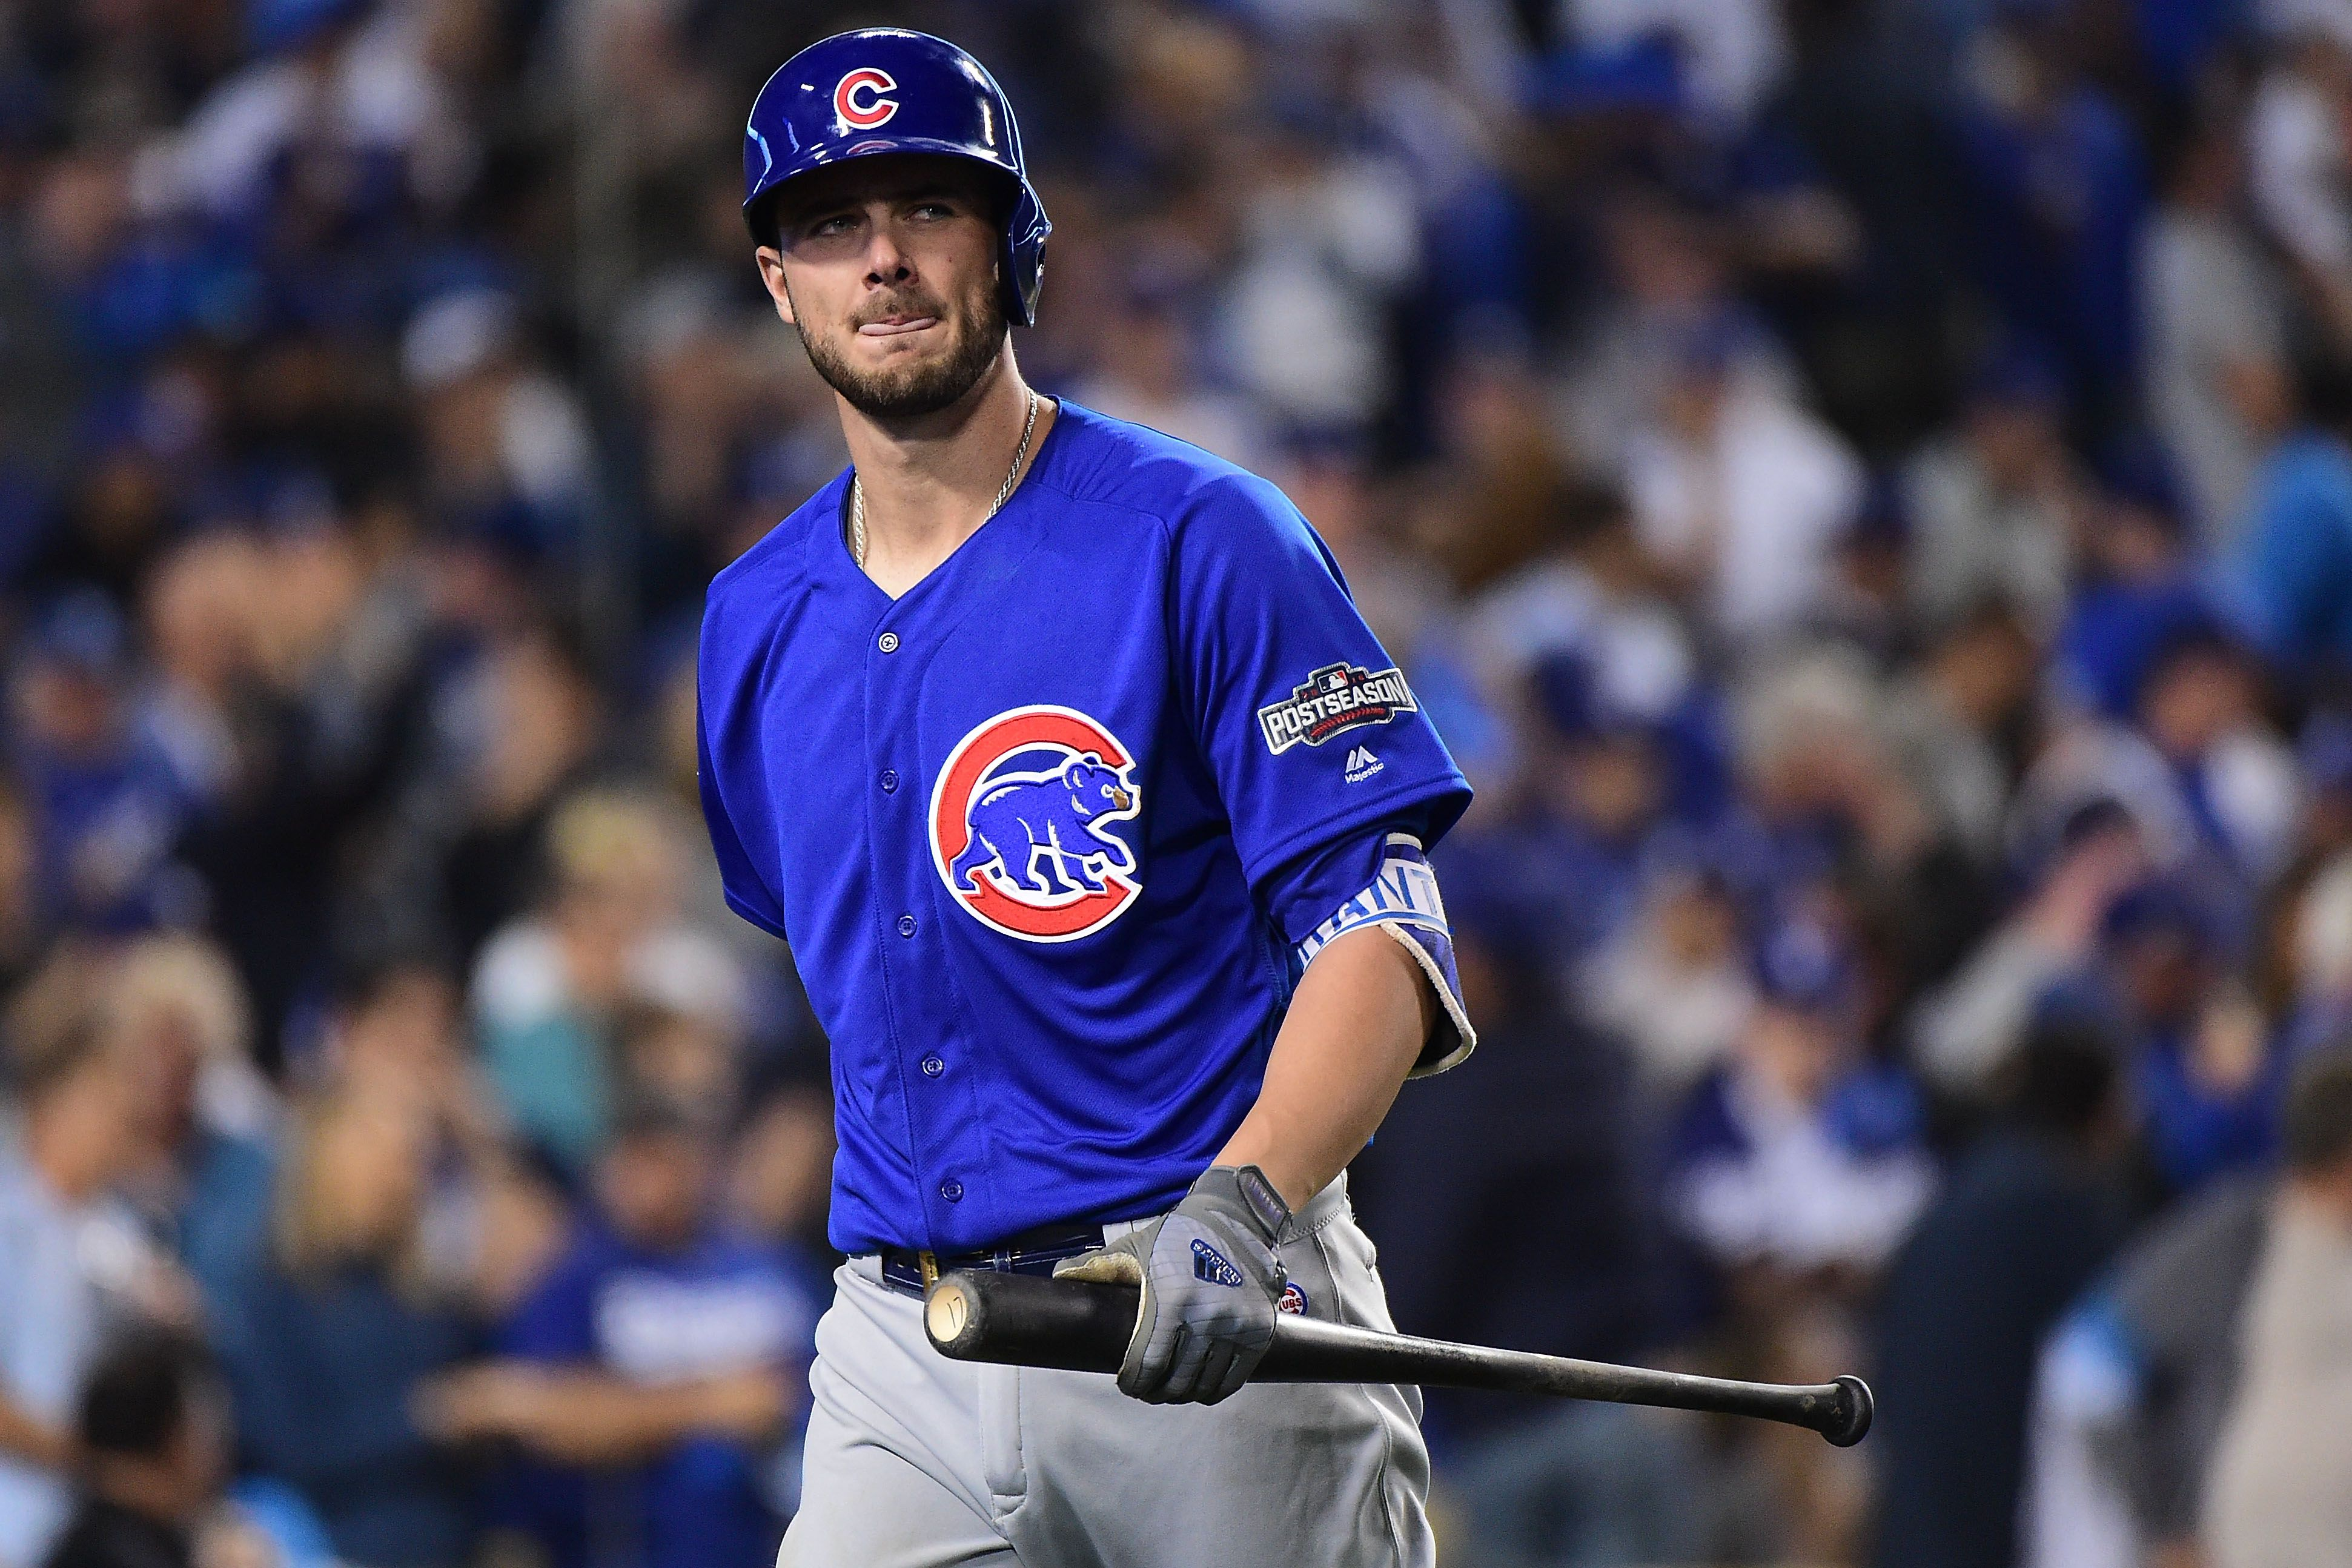 Kris Bryant's Face During The Last Out Of The World Series